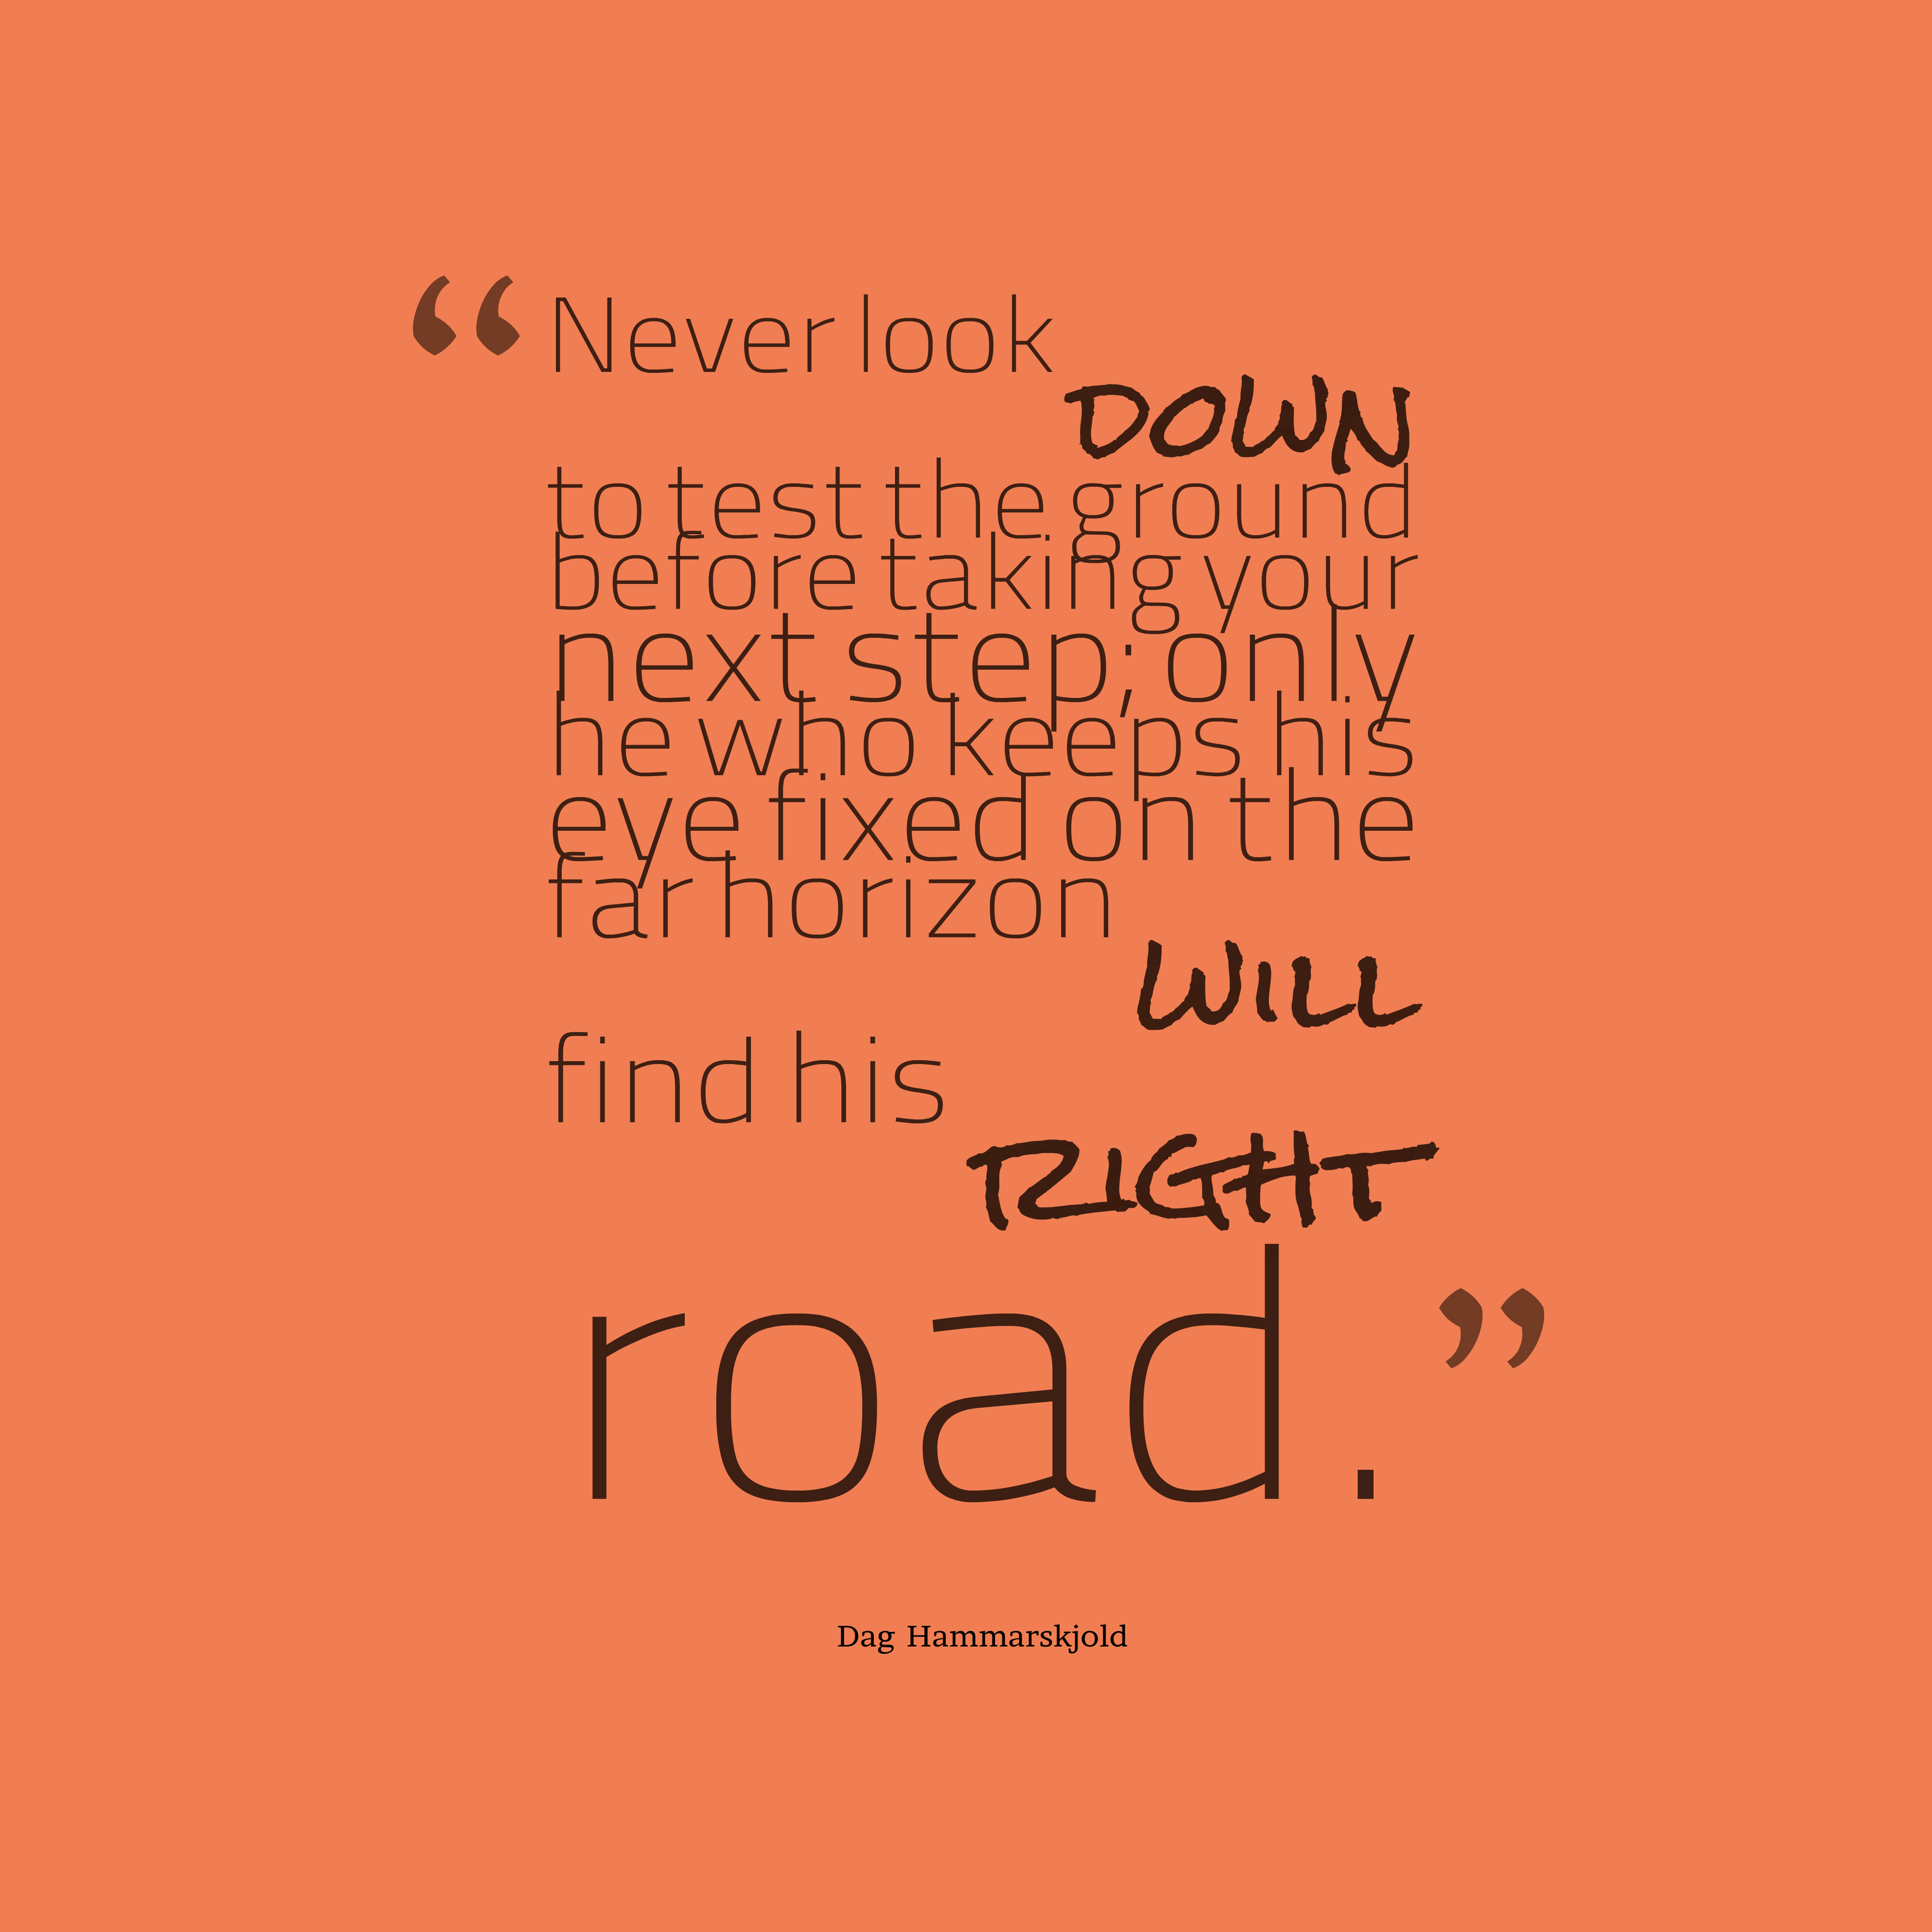 Quotes image of Never look down to test the ground before taking your next step; only he who keeps his eye fixed on the far horizon will find his right road.